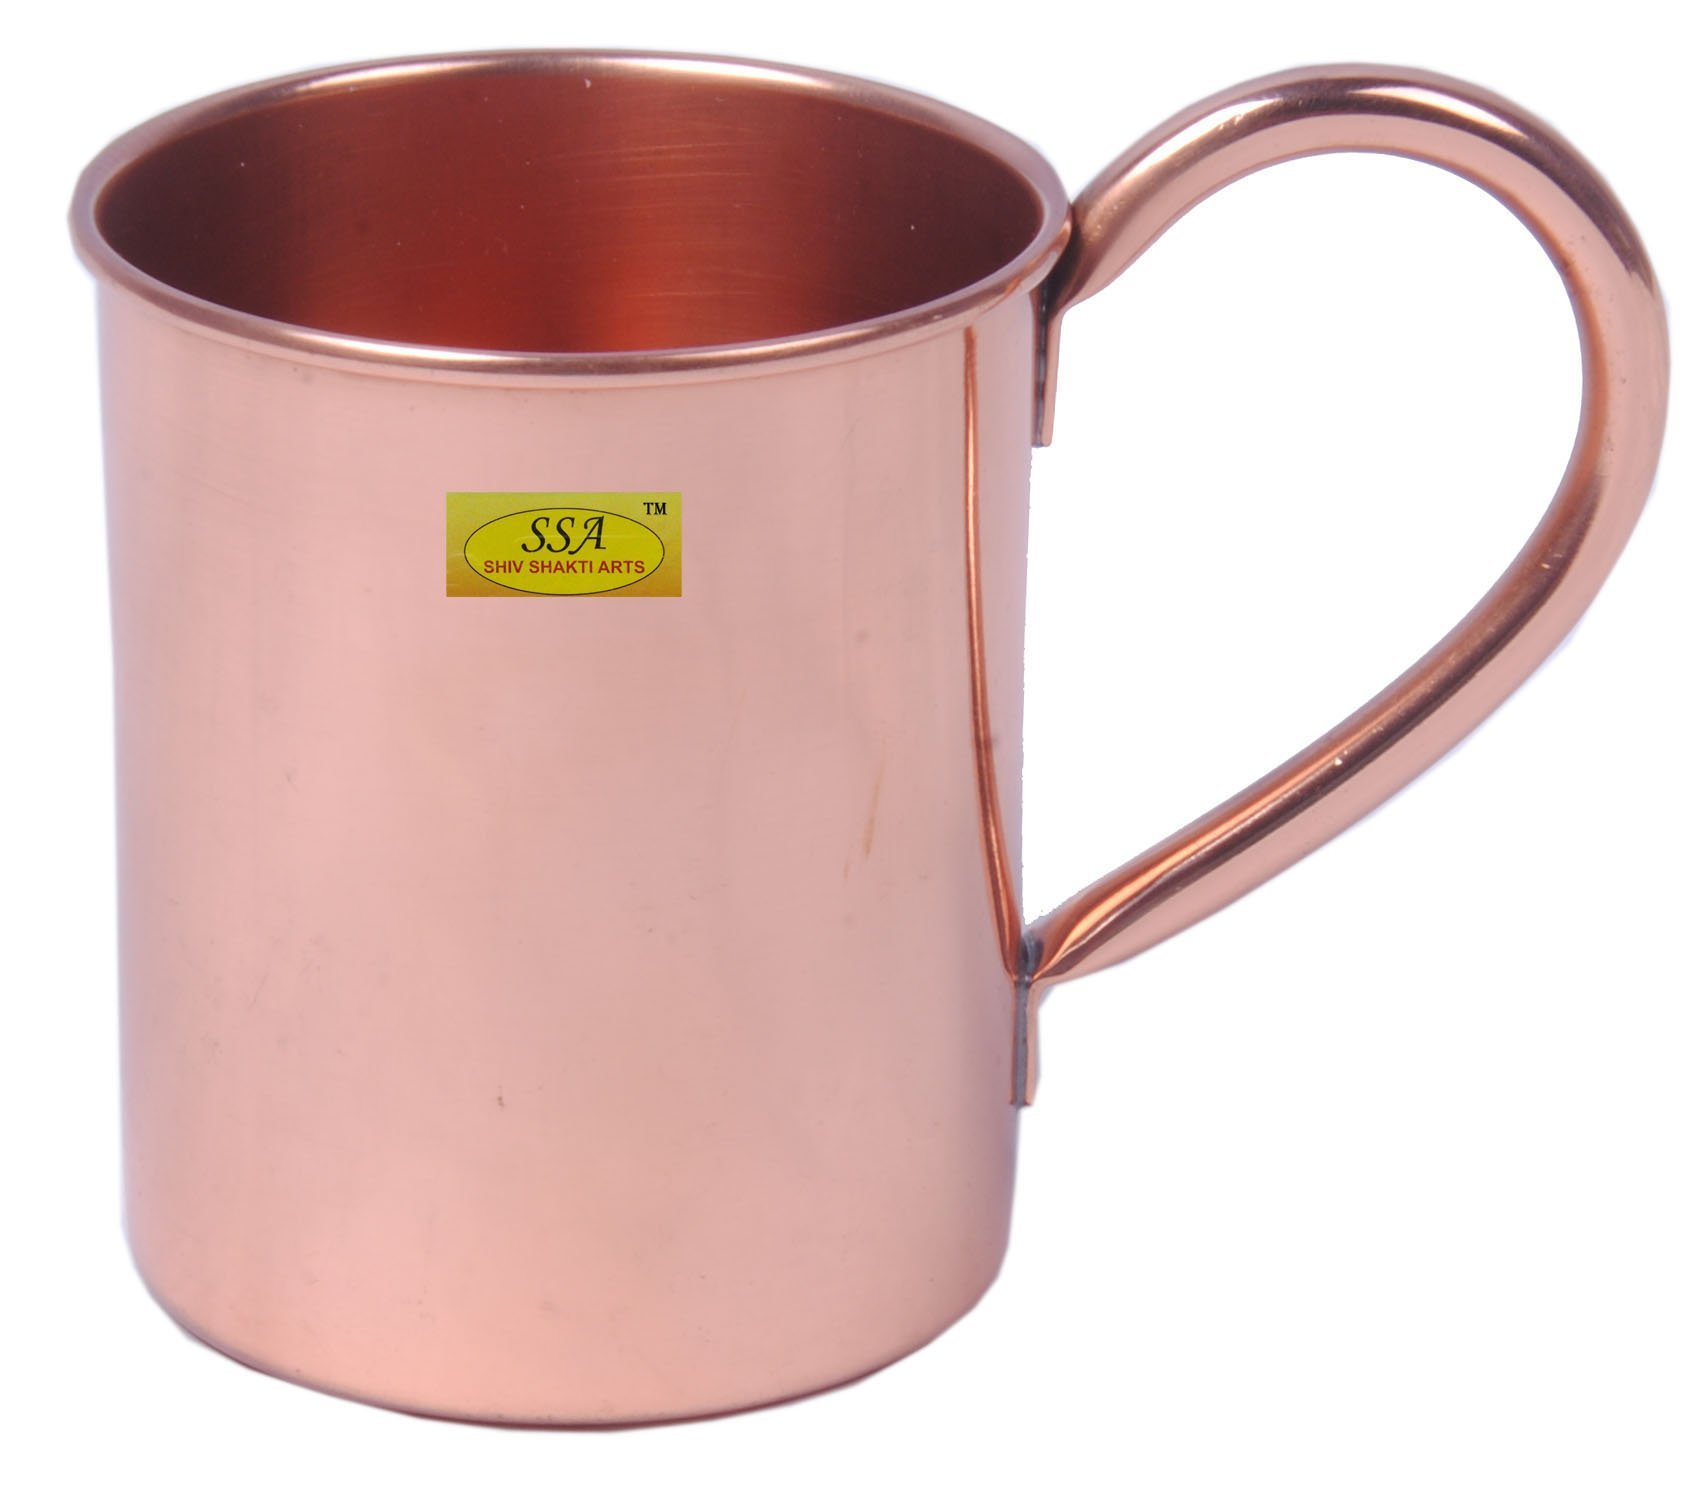 SHIV SHAKTI ARTS 3.5'' X 3.5'' Traditional Handmade 100% Pure Copper Moscow Mule Mug Capacity 415 Ml For Use Restaurant Ware Bar Ware Hotel Ware Home Ware For Wine Vodka Beer